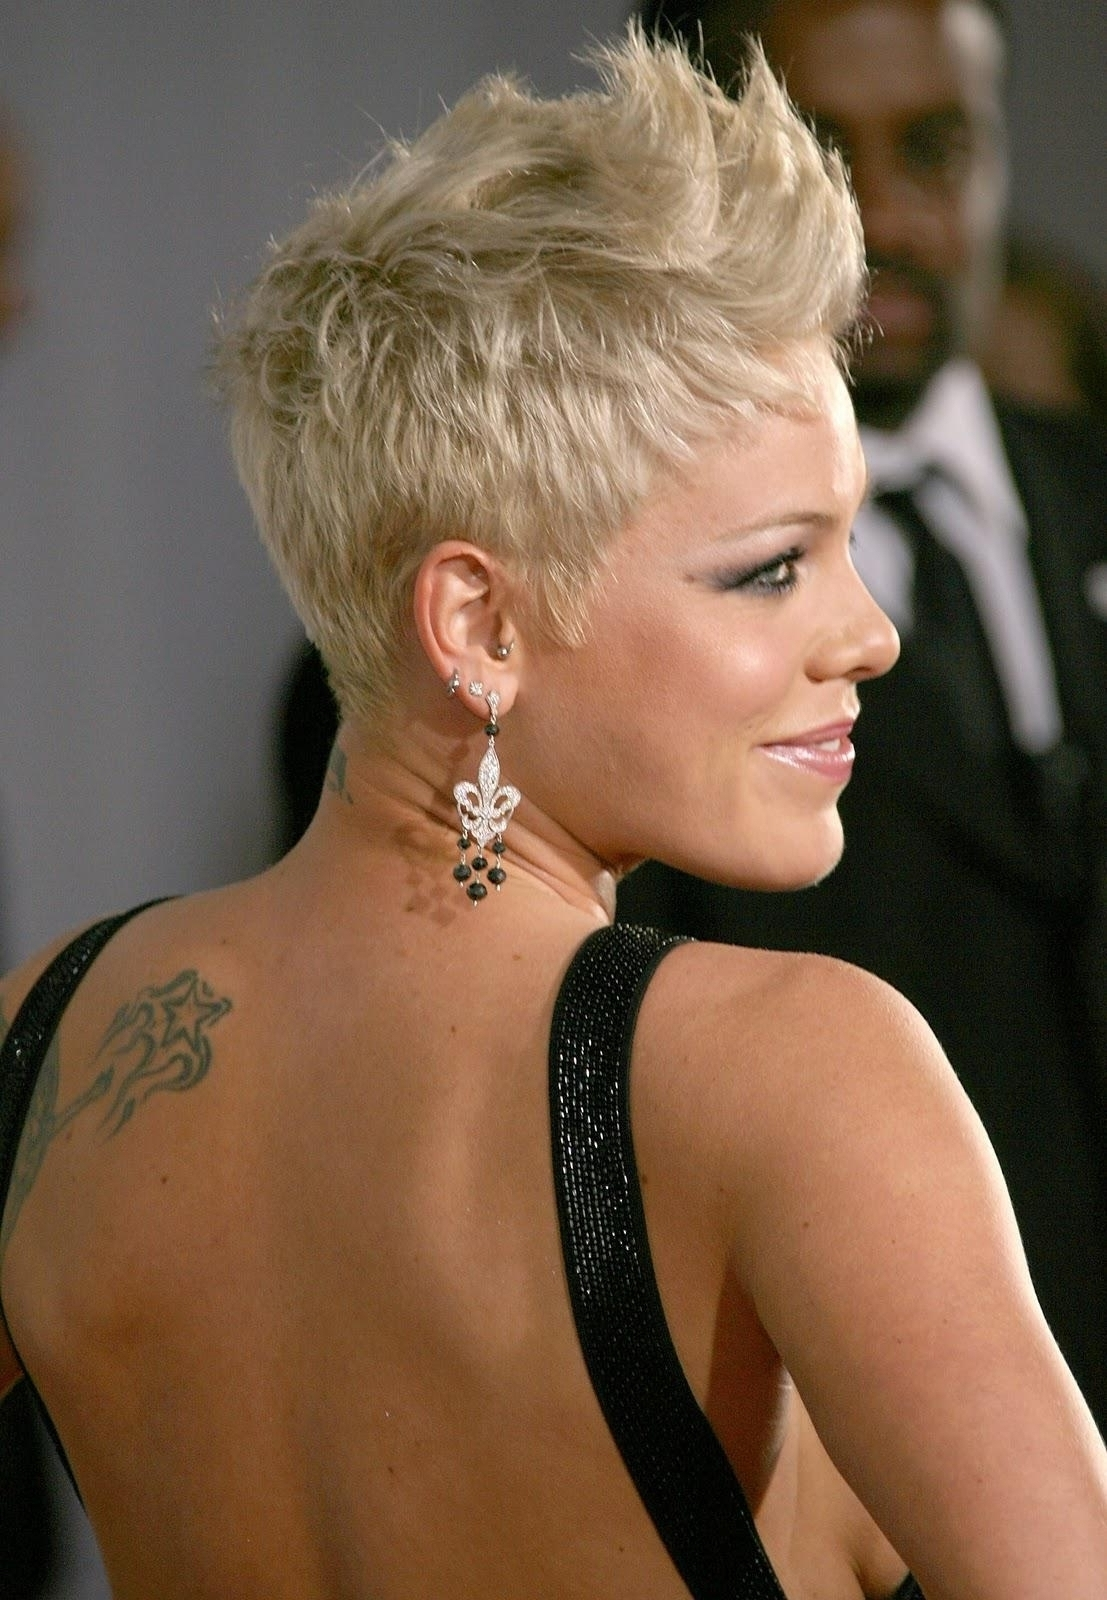 Why P Nk Hairstyles Had Been So Popular Till Now? | P Nk Intended For Most Popular Pink Pixie Hairstyles (View 15 of 15)